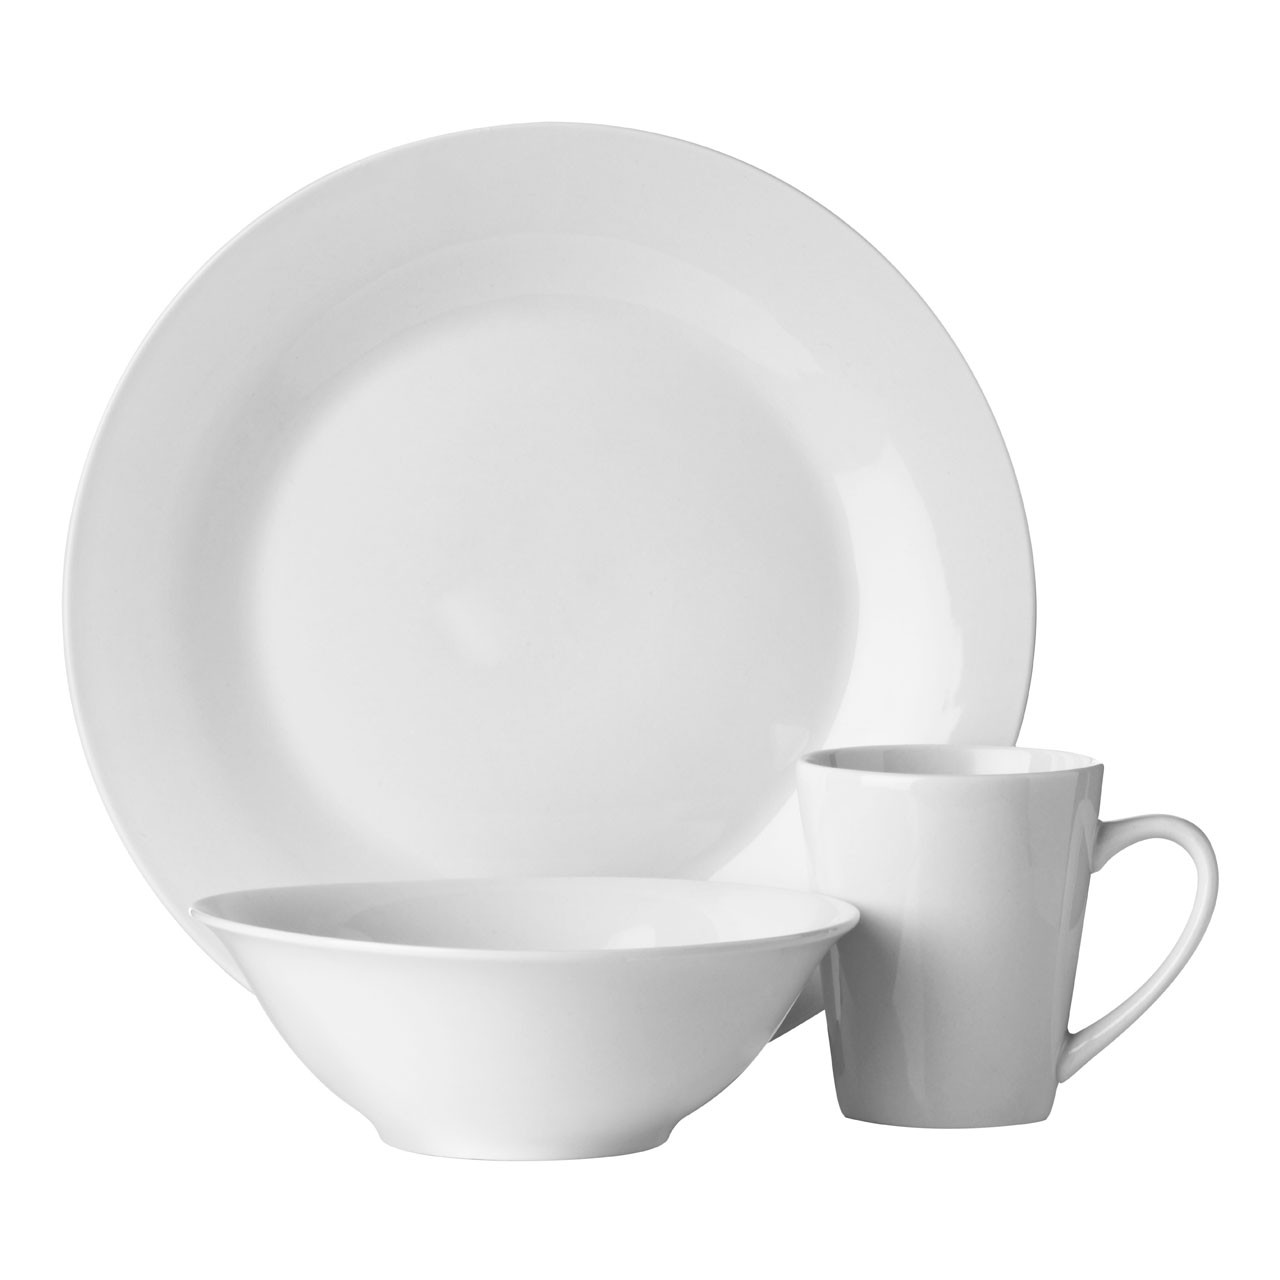 12pc Dinner Set, White Porcelain